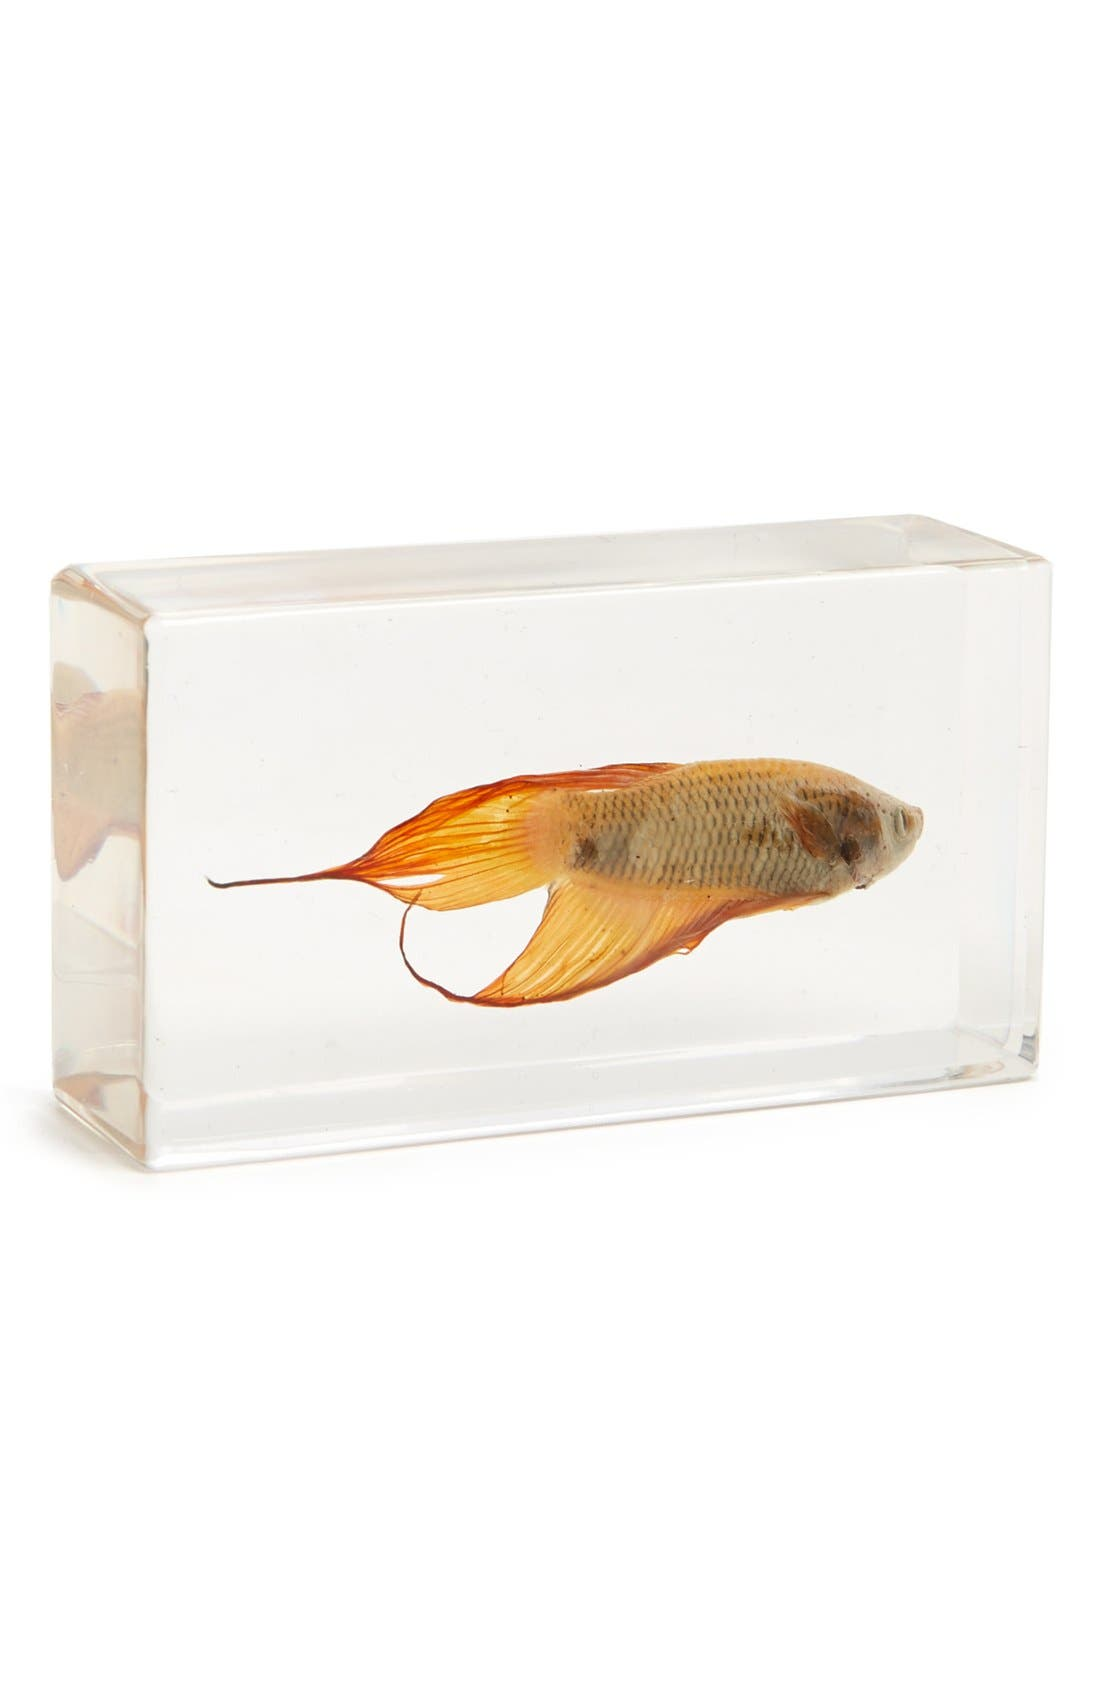 Main Image - The Evolution Store Tropical Betta Fish in Resin